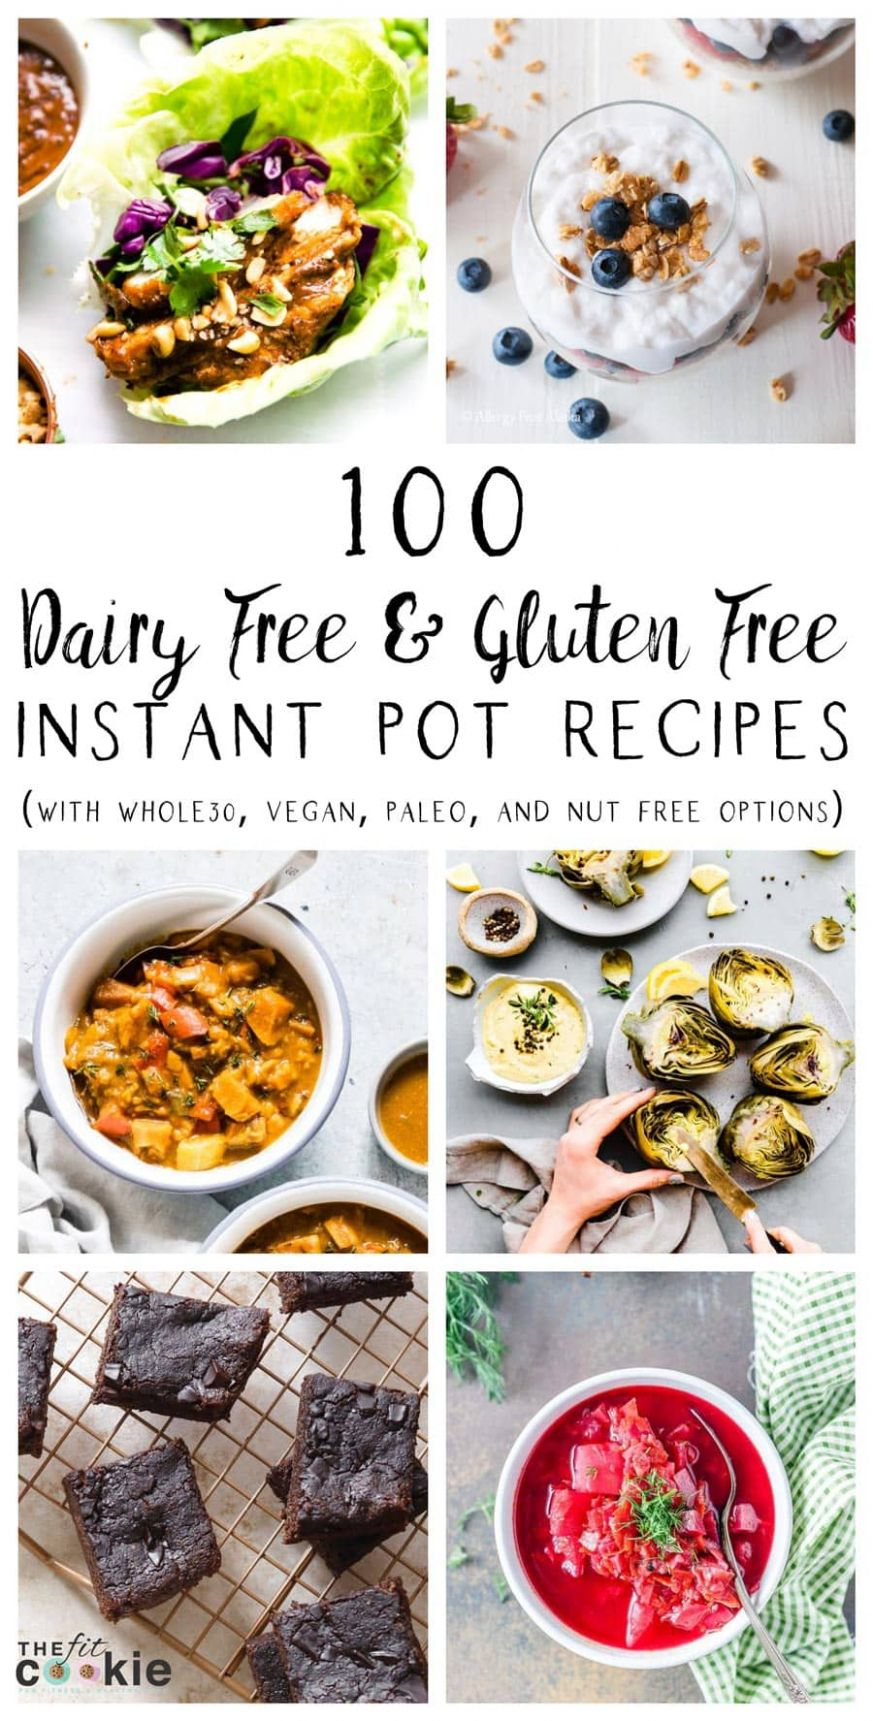 12 Dairy Free and Gluten Free Instant Pot Recipes • The Fit Cookie